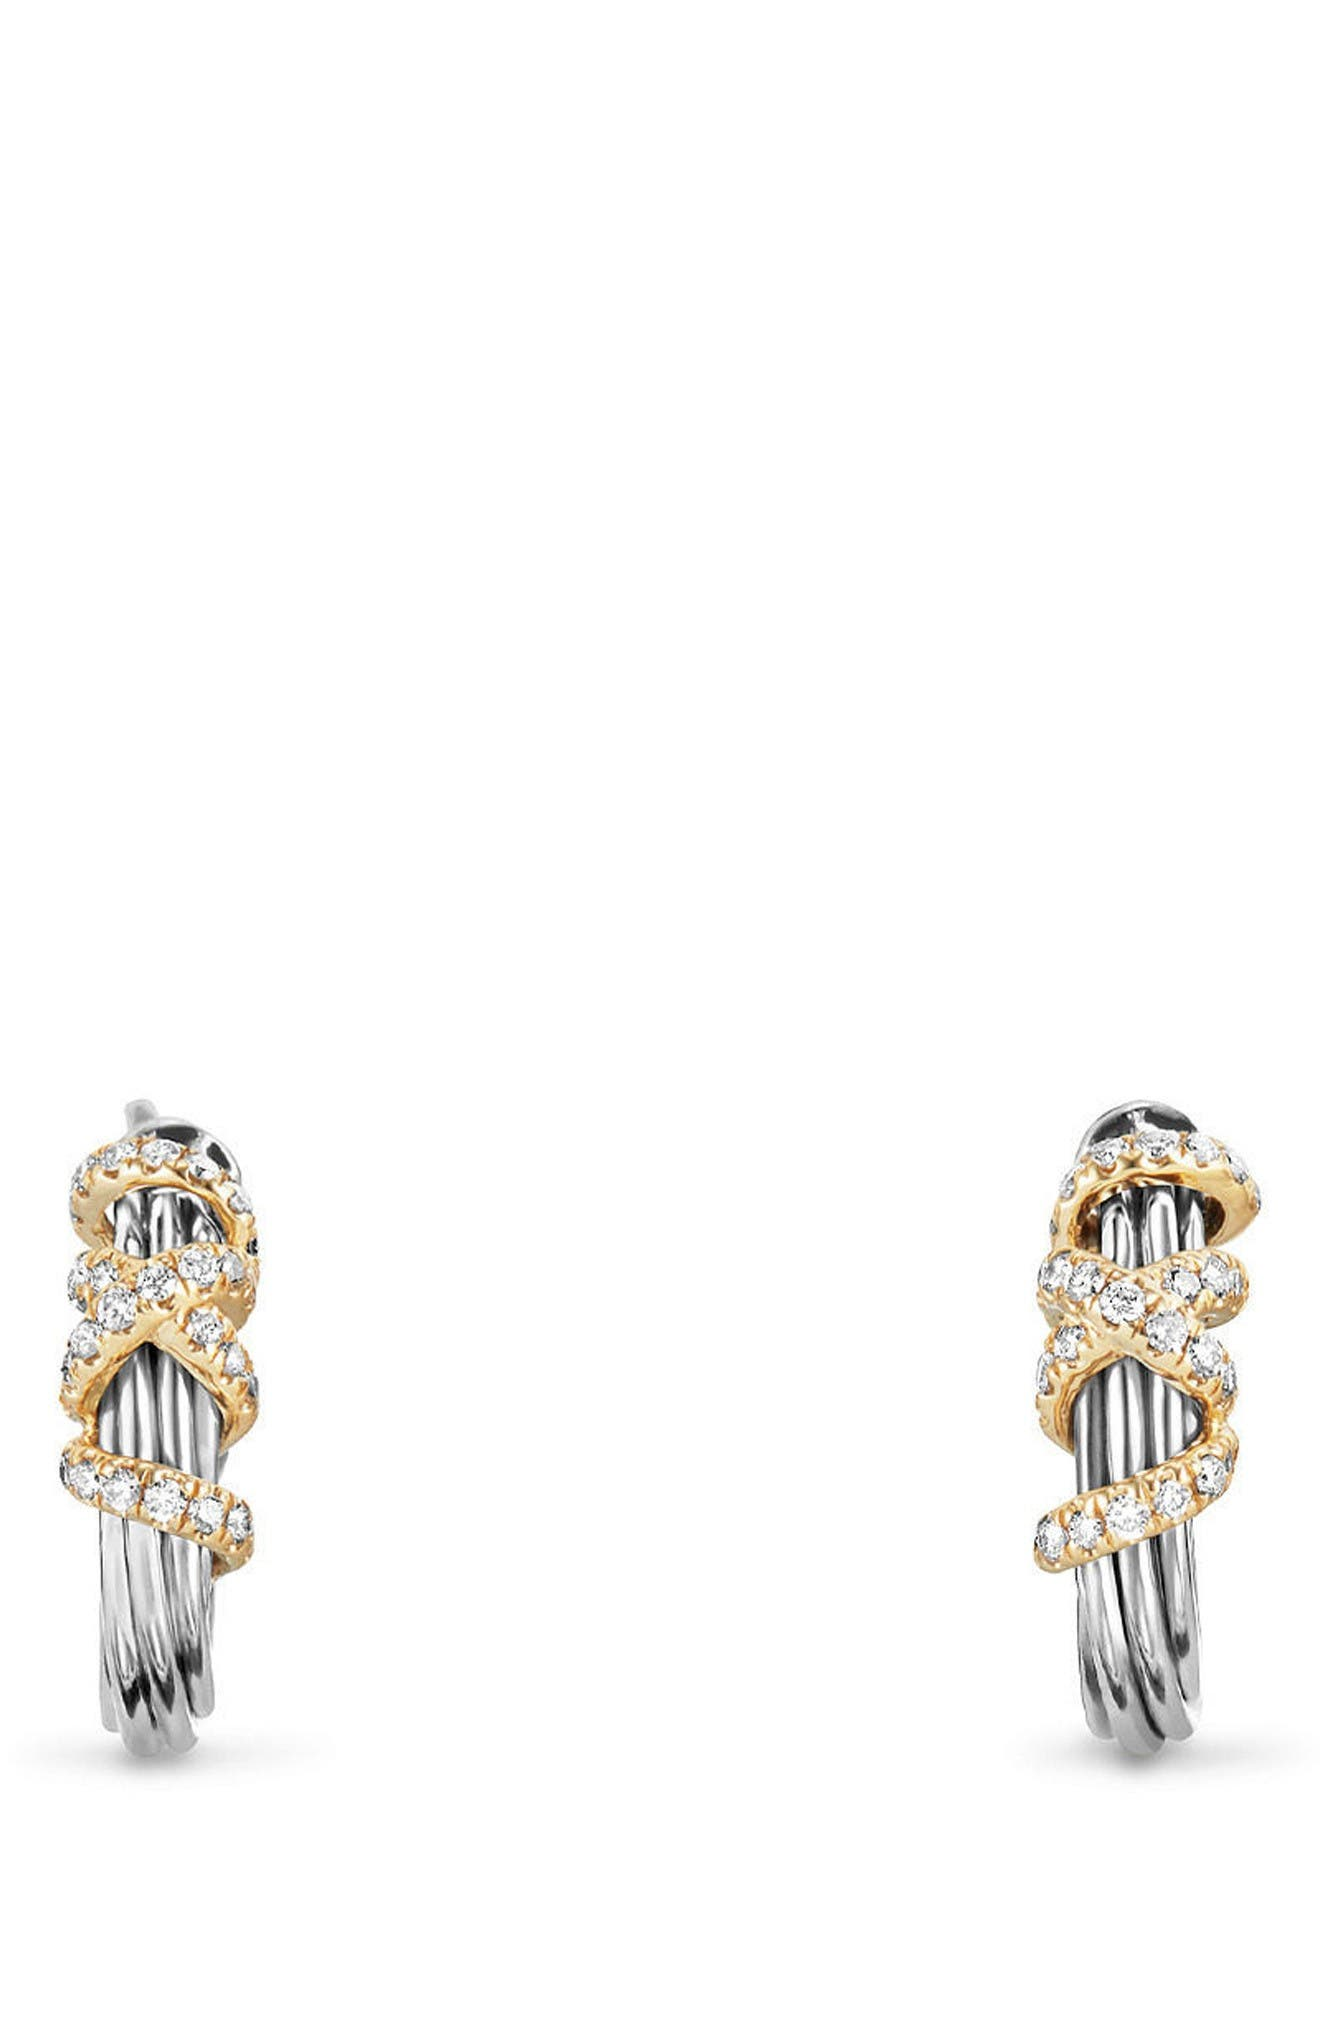 Helena Small Hoop Earrings with Diamonds & 18K Gold,                         Main,                         color, Silver/ Gold